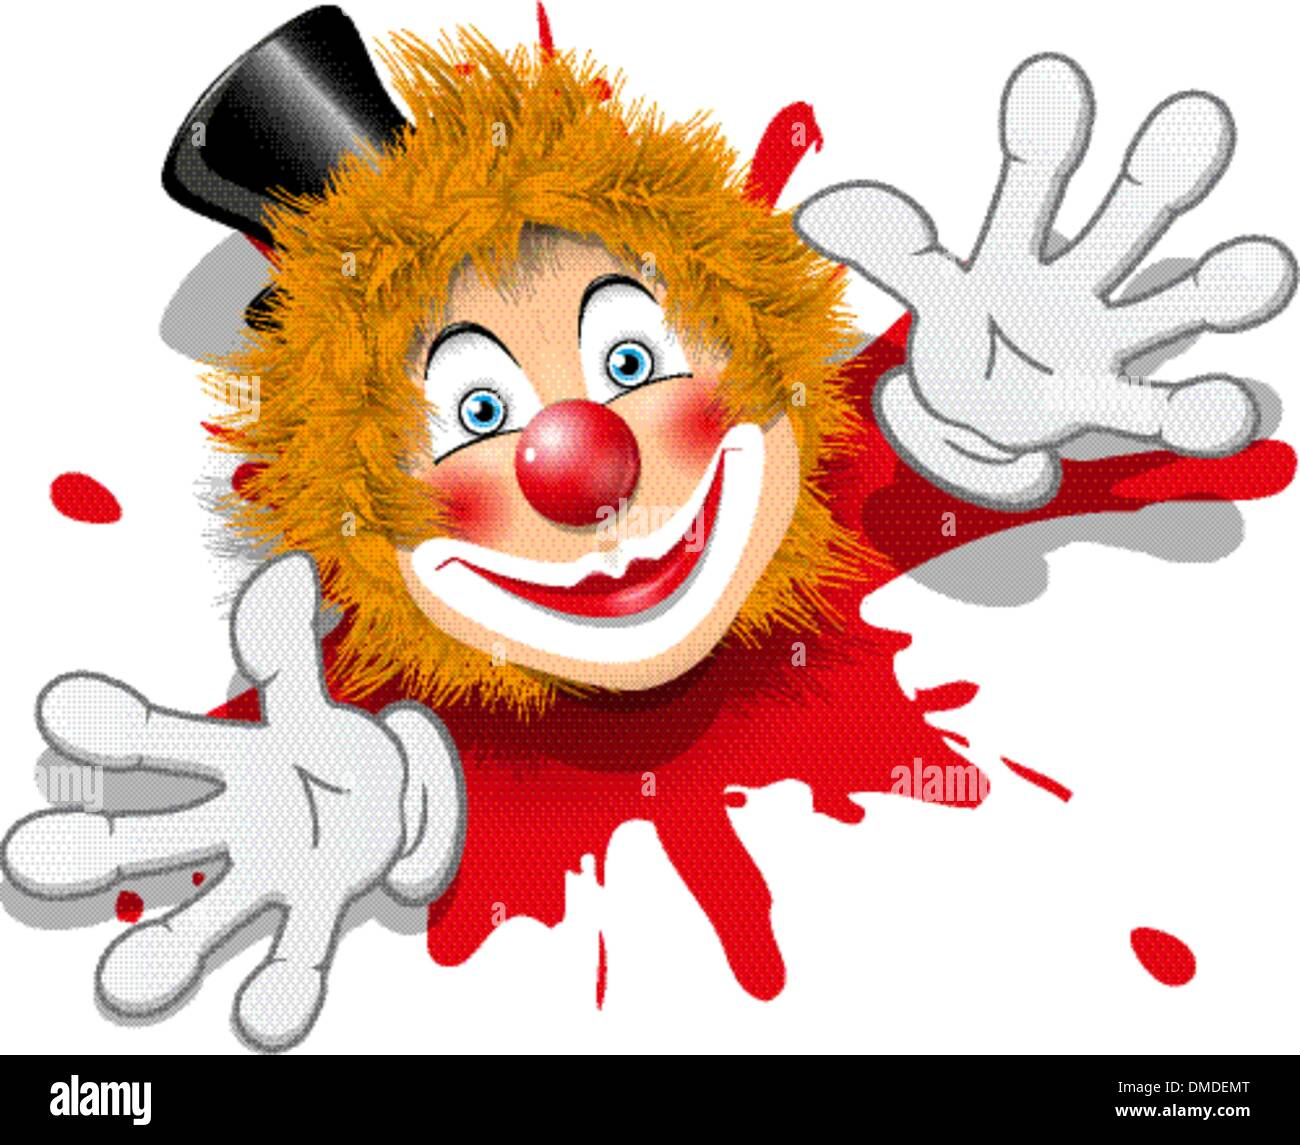 redhaired clown in white gloves - Stock Image